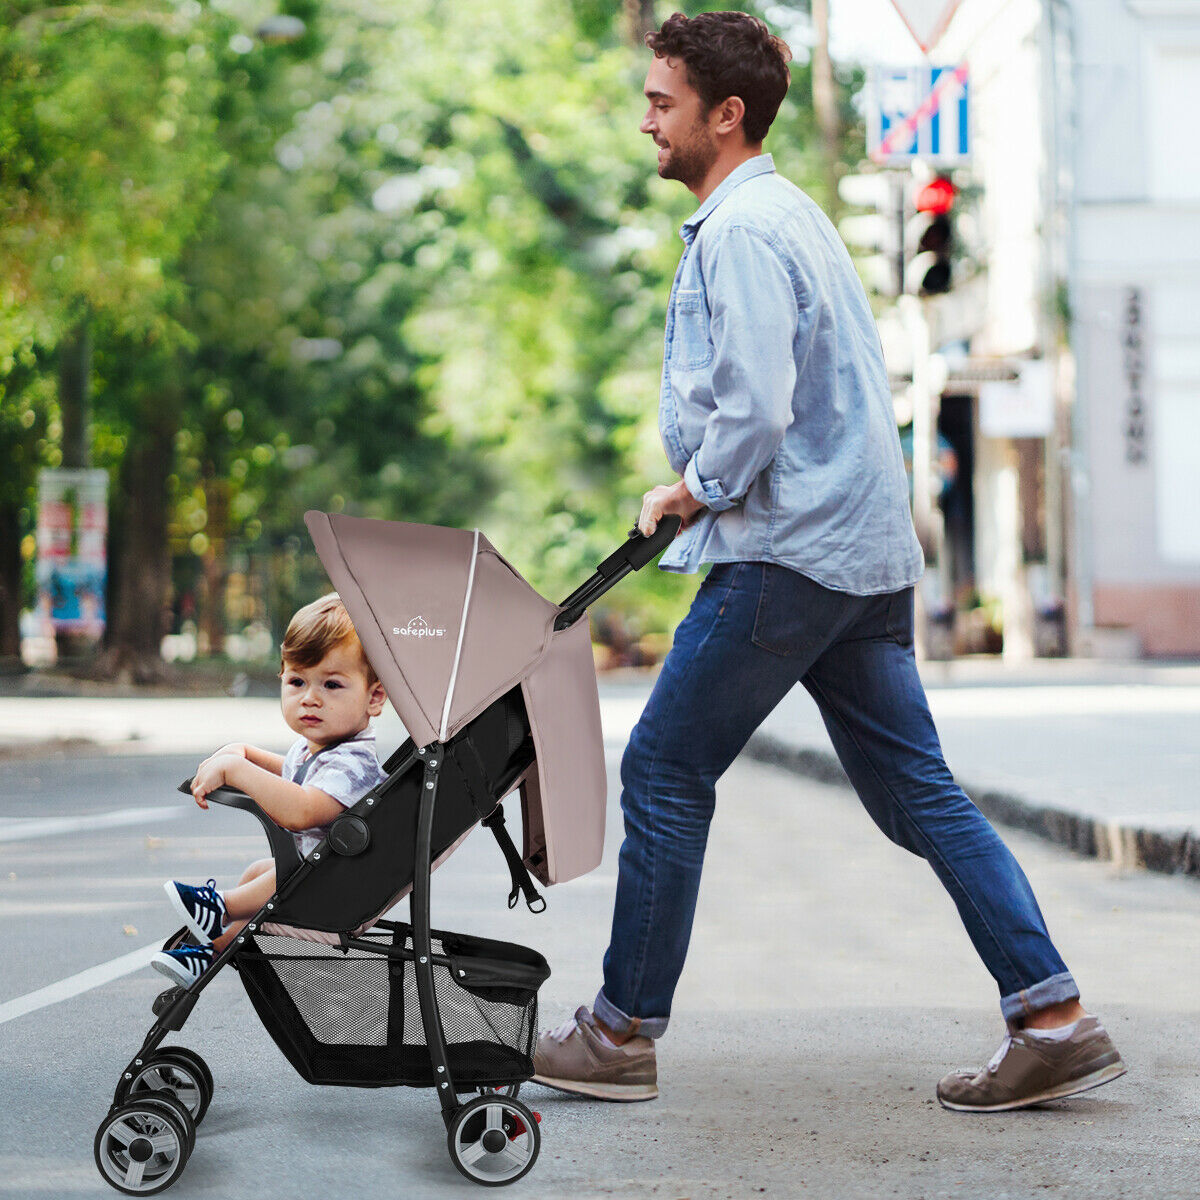 Foldable Lightweight Baby Stroller Kids Travel Pushchair 5-Point Safety System